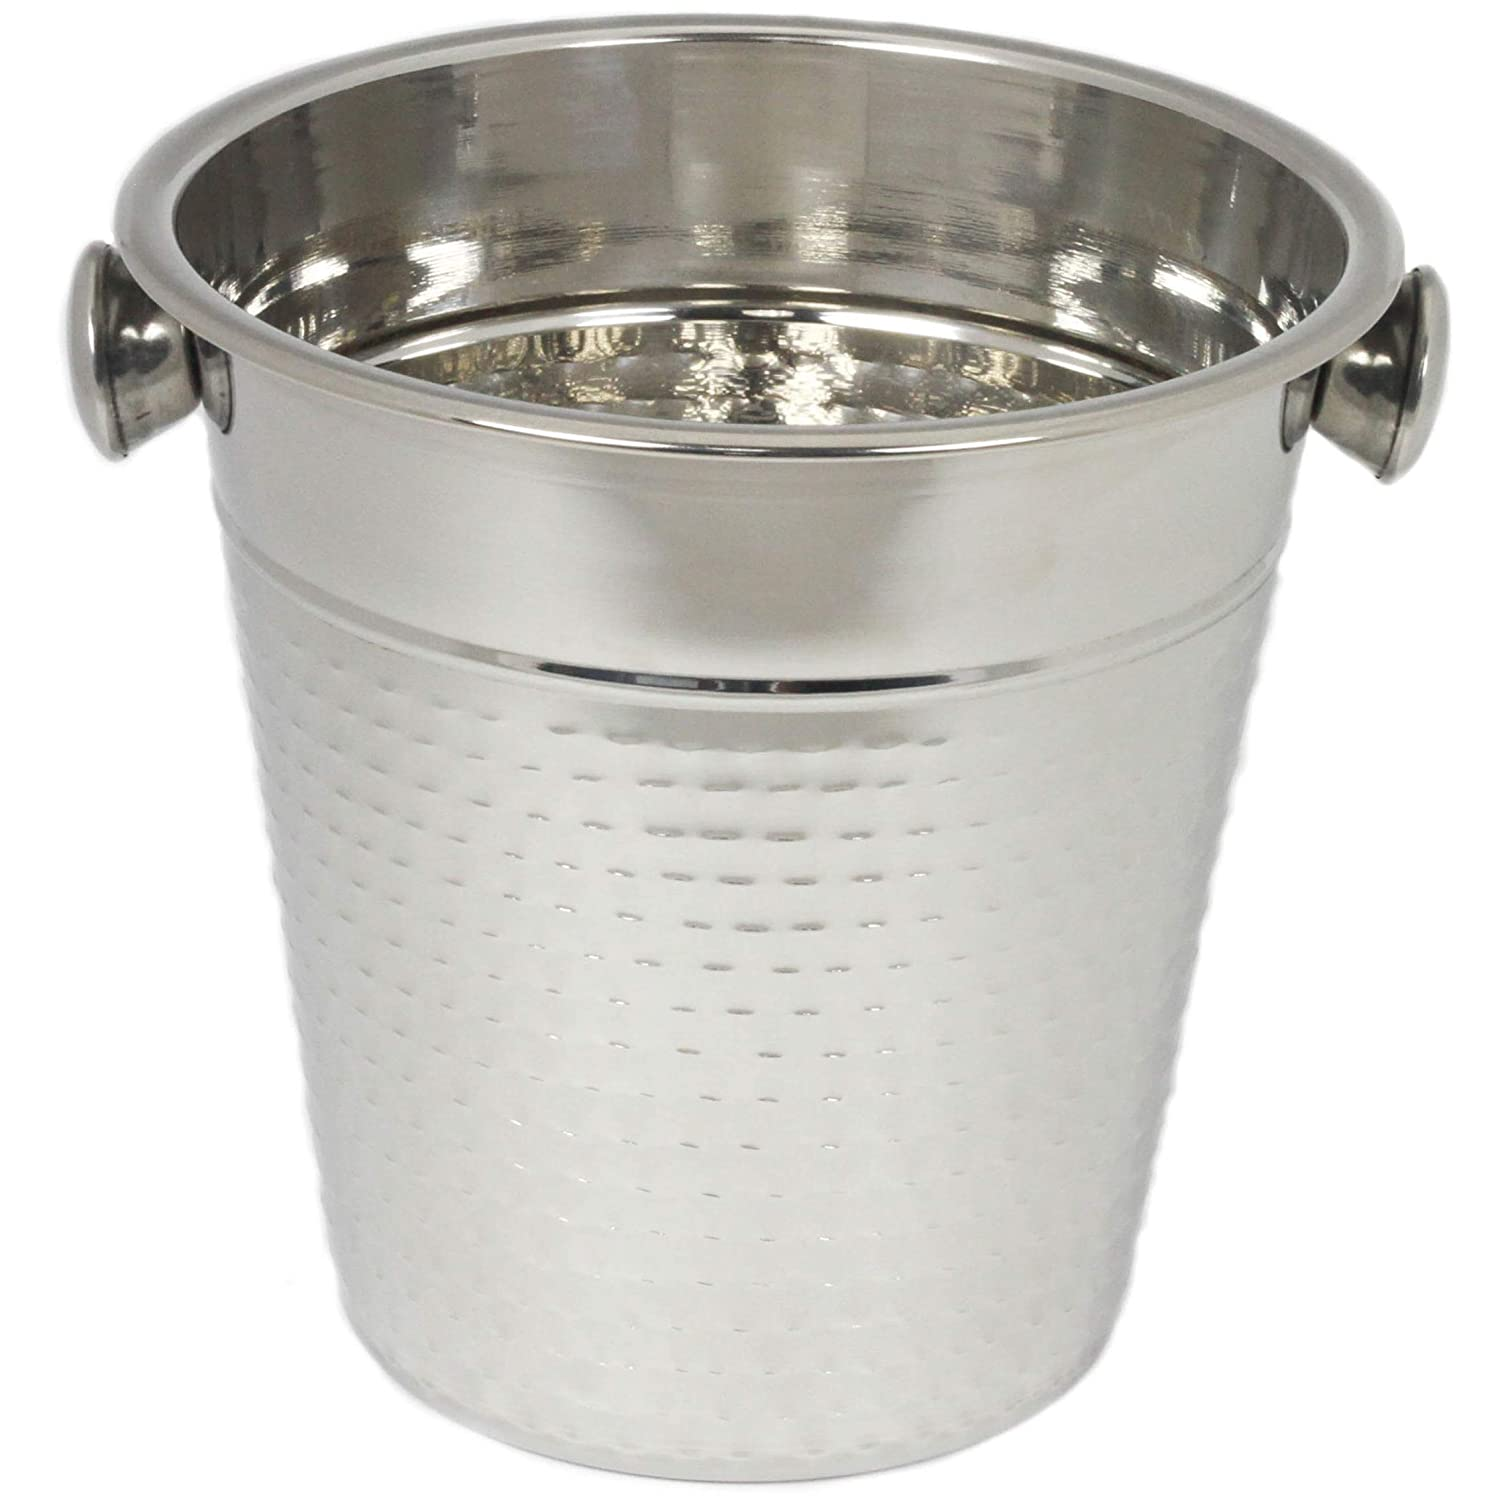 Chef Craft 21994 Hammered Champagne Bucket, 4 Quart, Stainless Steel